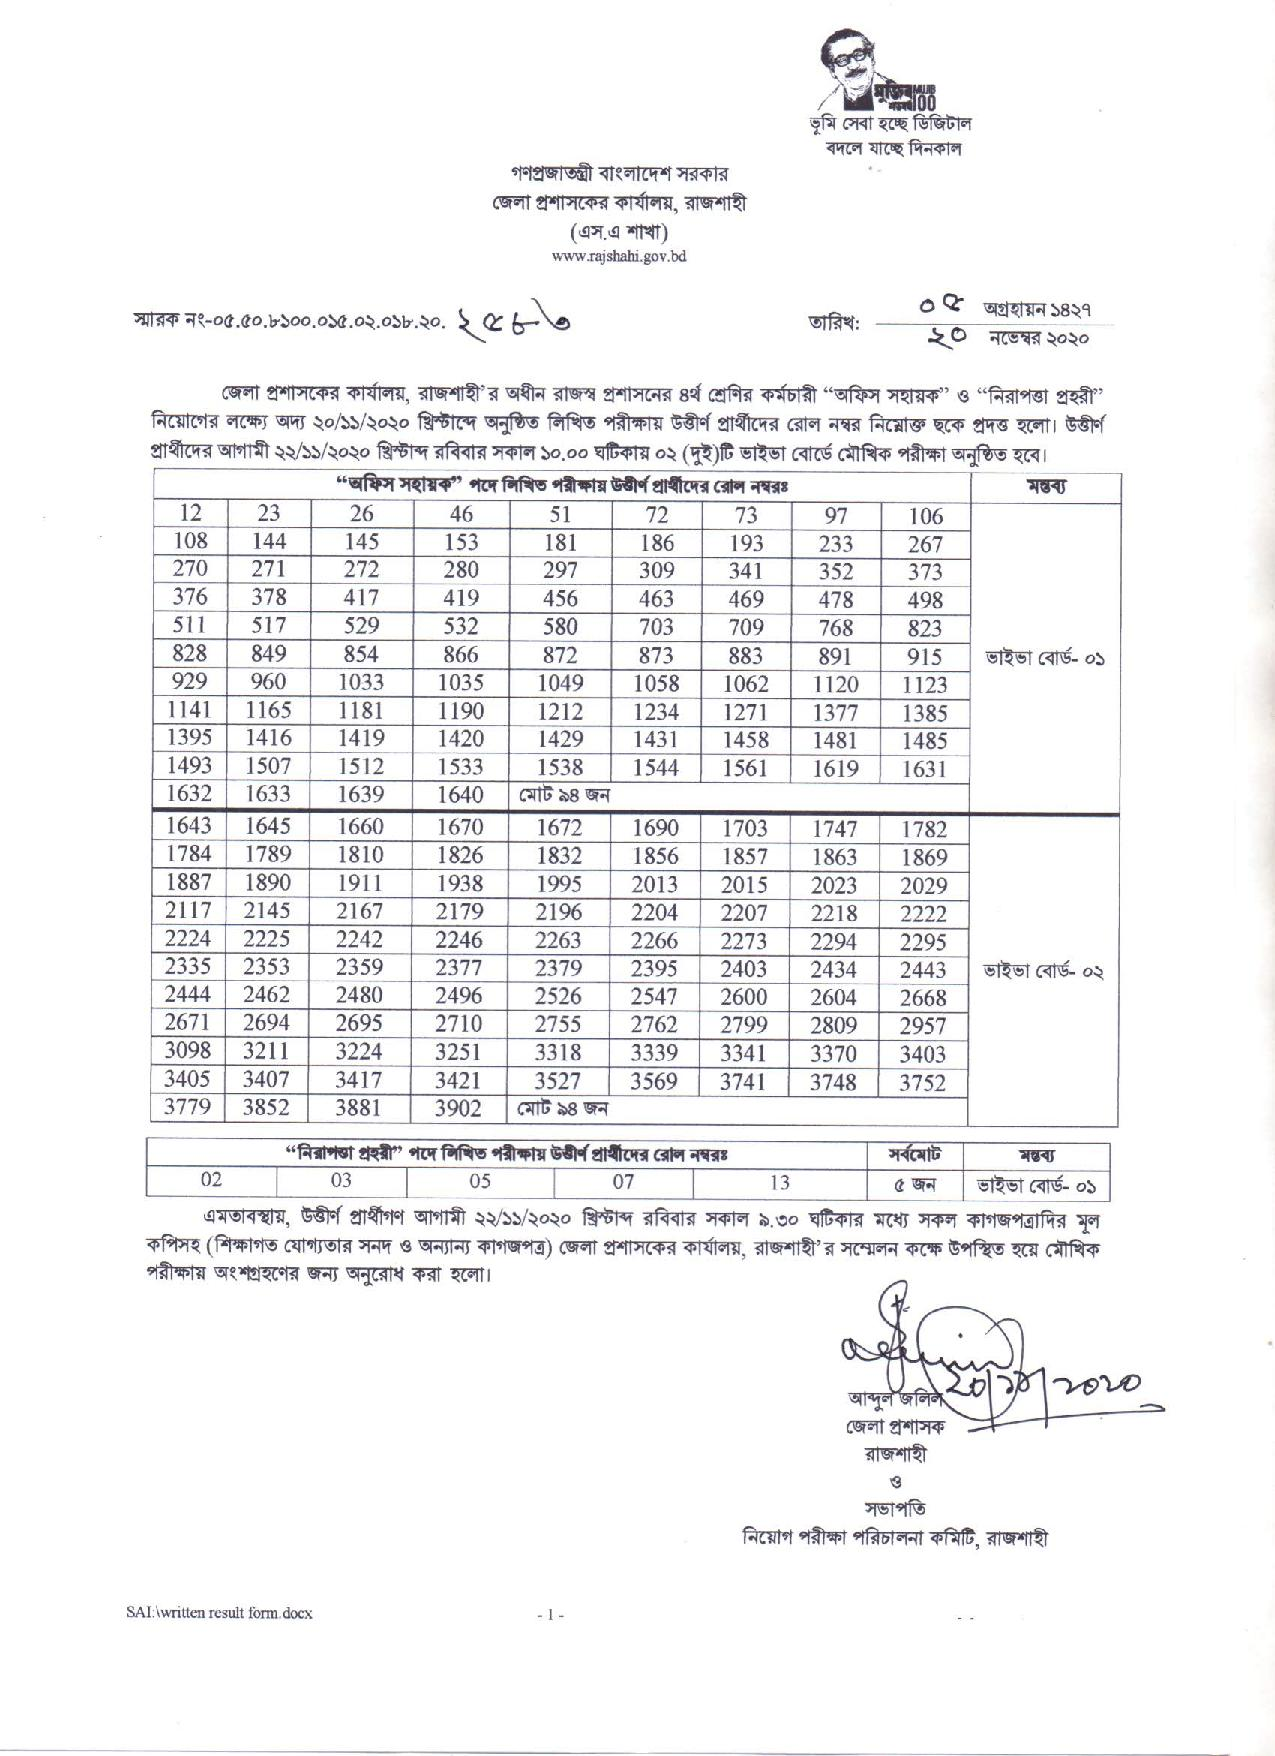 DC Office Rajshahi exam result and Viva date 2020